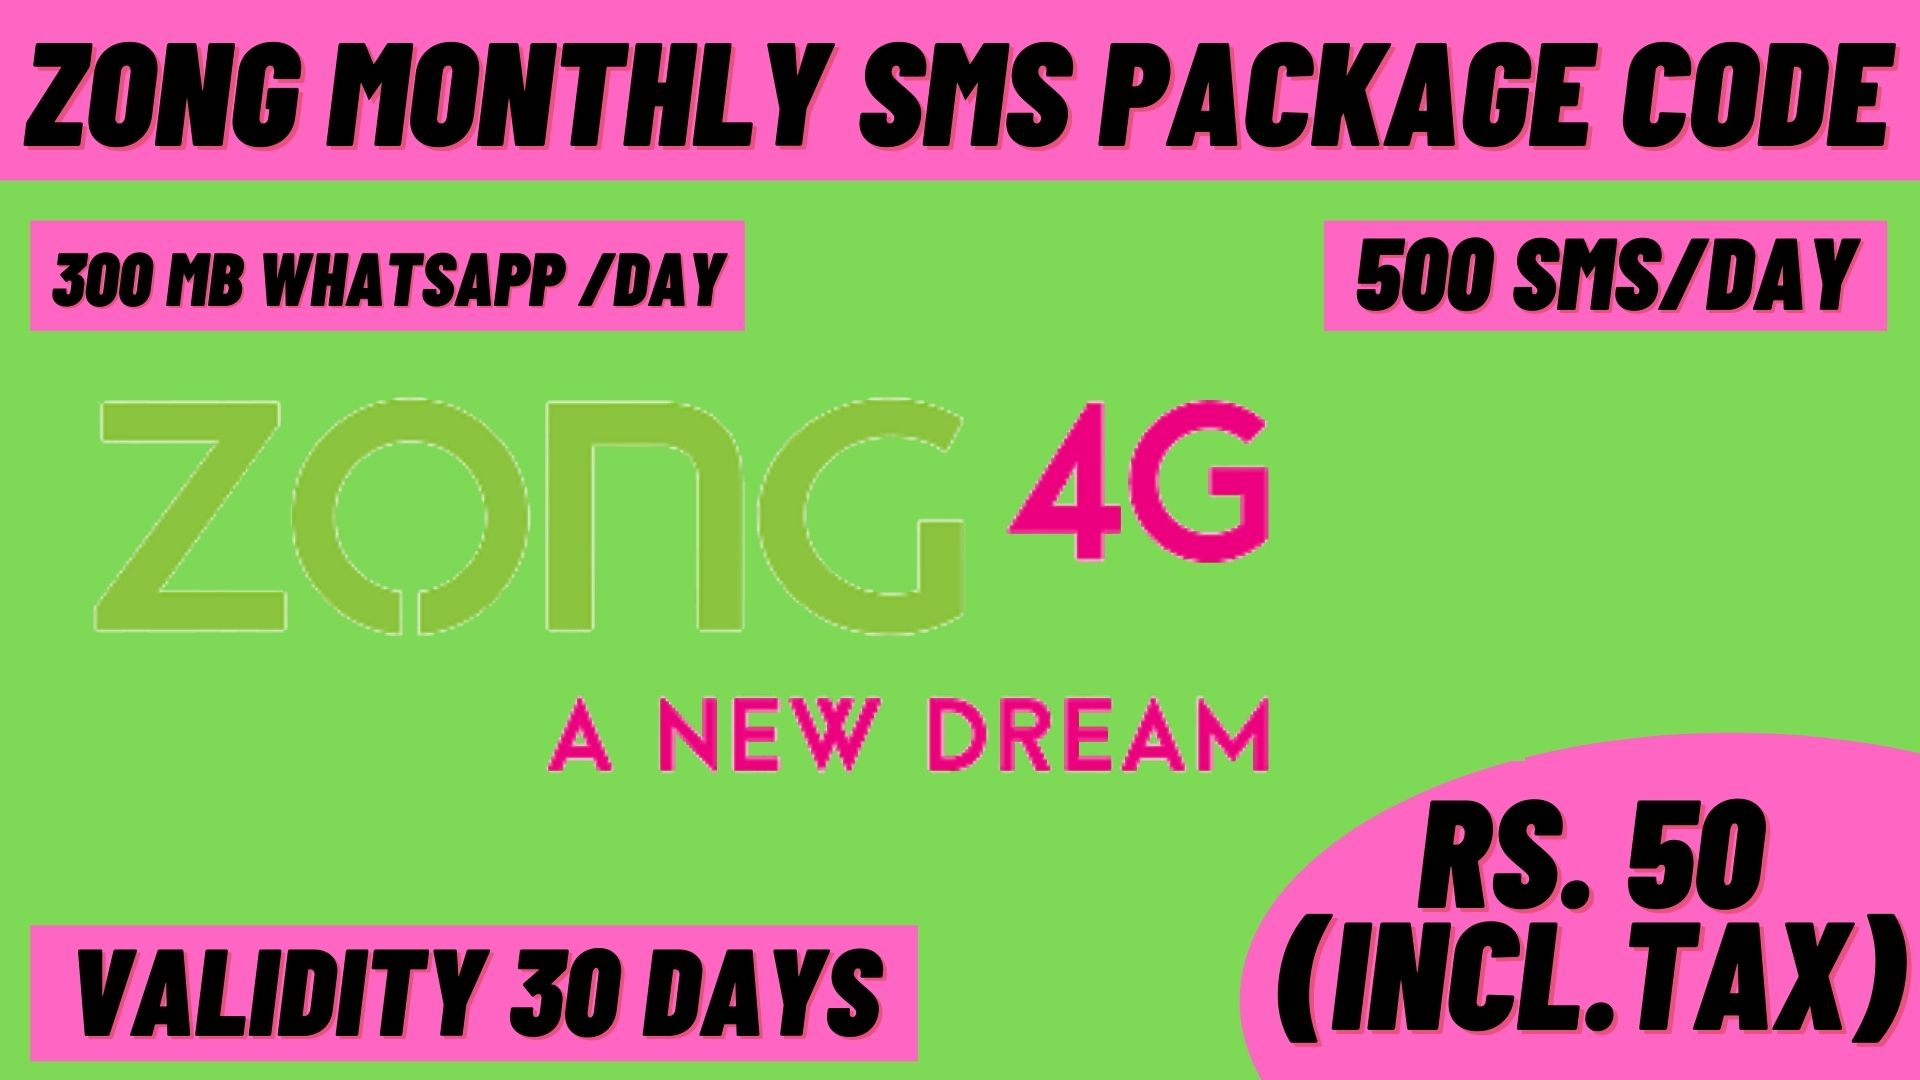 Zong Monthly SMS Package Code